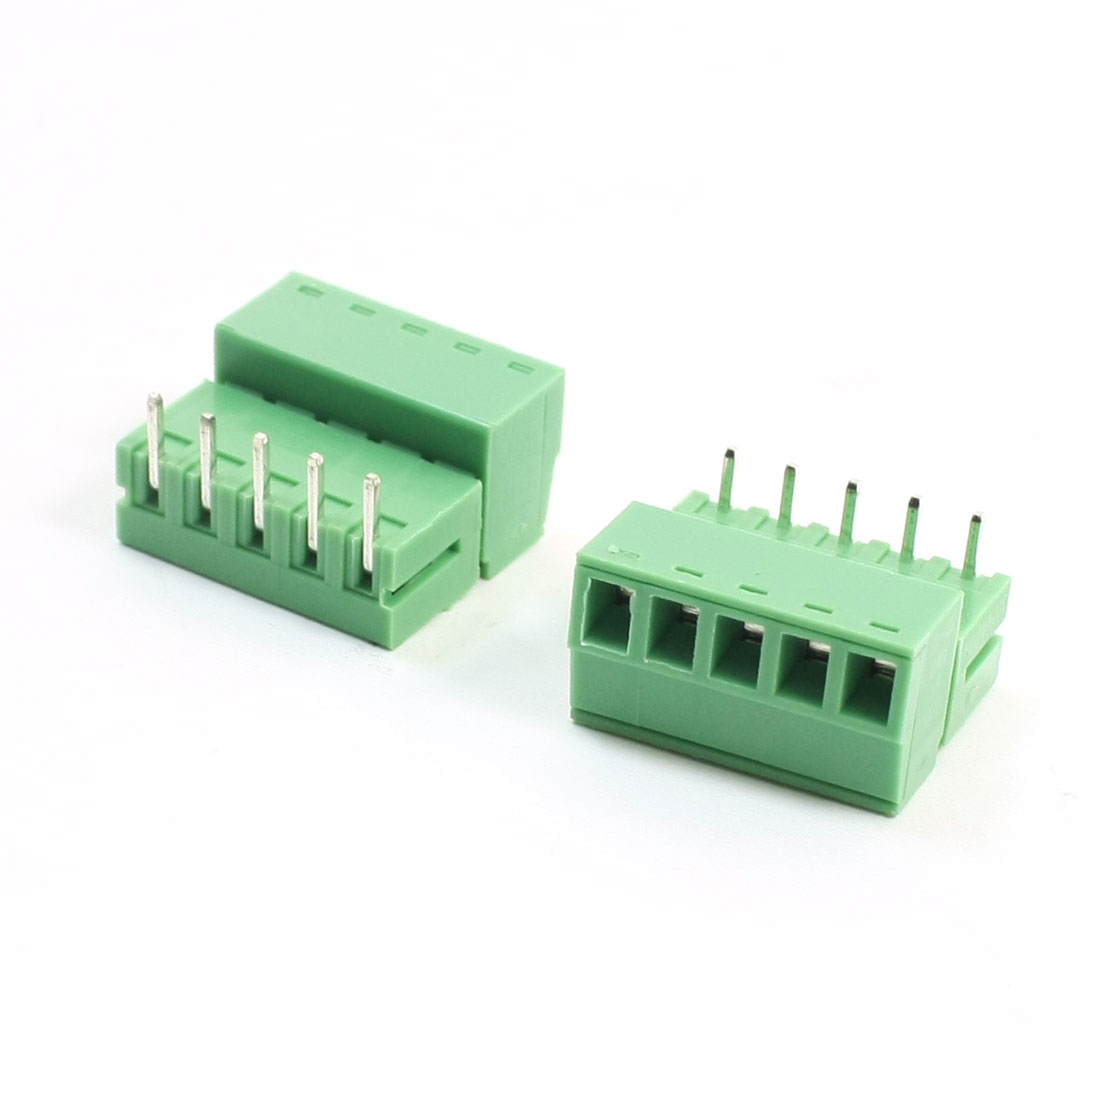 2 Pcs 2EDG 300V 6A 3.81mm Pitch 22-16AWG 5Pin Pluggable Type Through Hole Mount PCB Right Angle Screw Terminal Block Connector